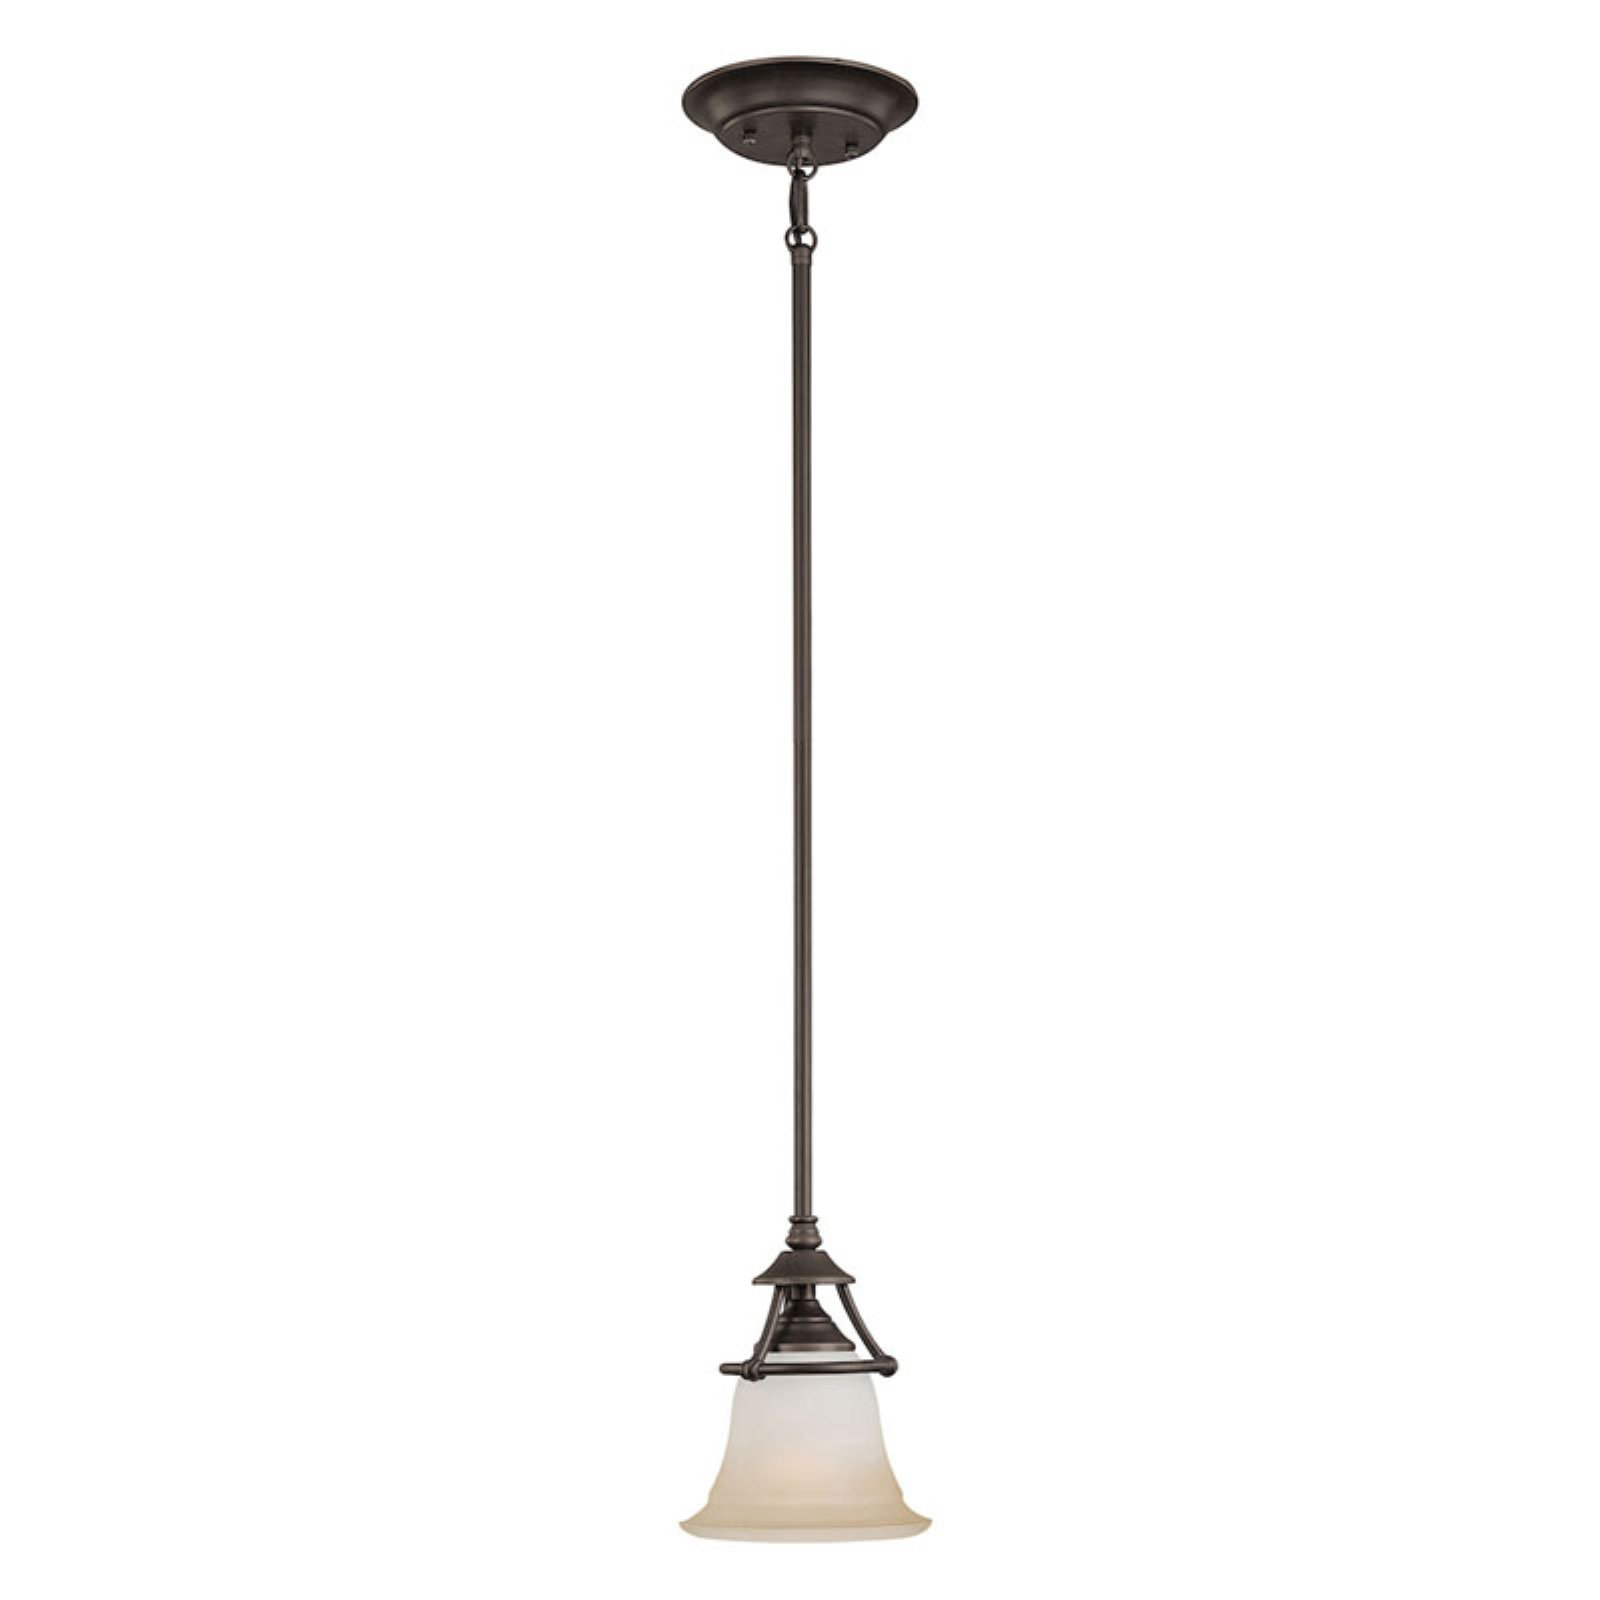 Thomas Lighting Harmony SL825641 Pendant Light by ELK